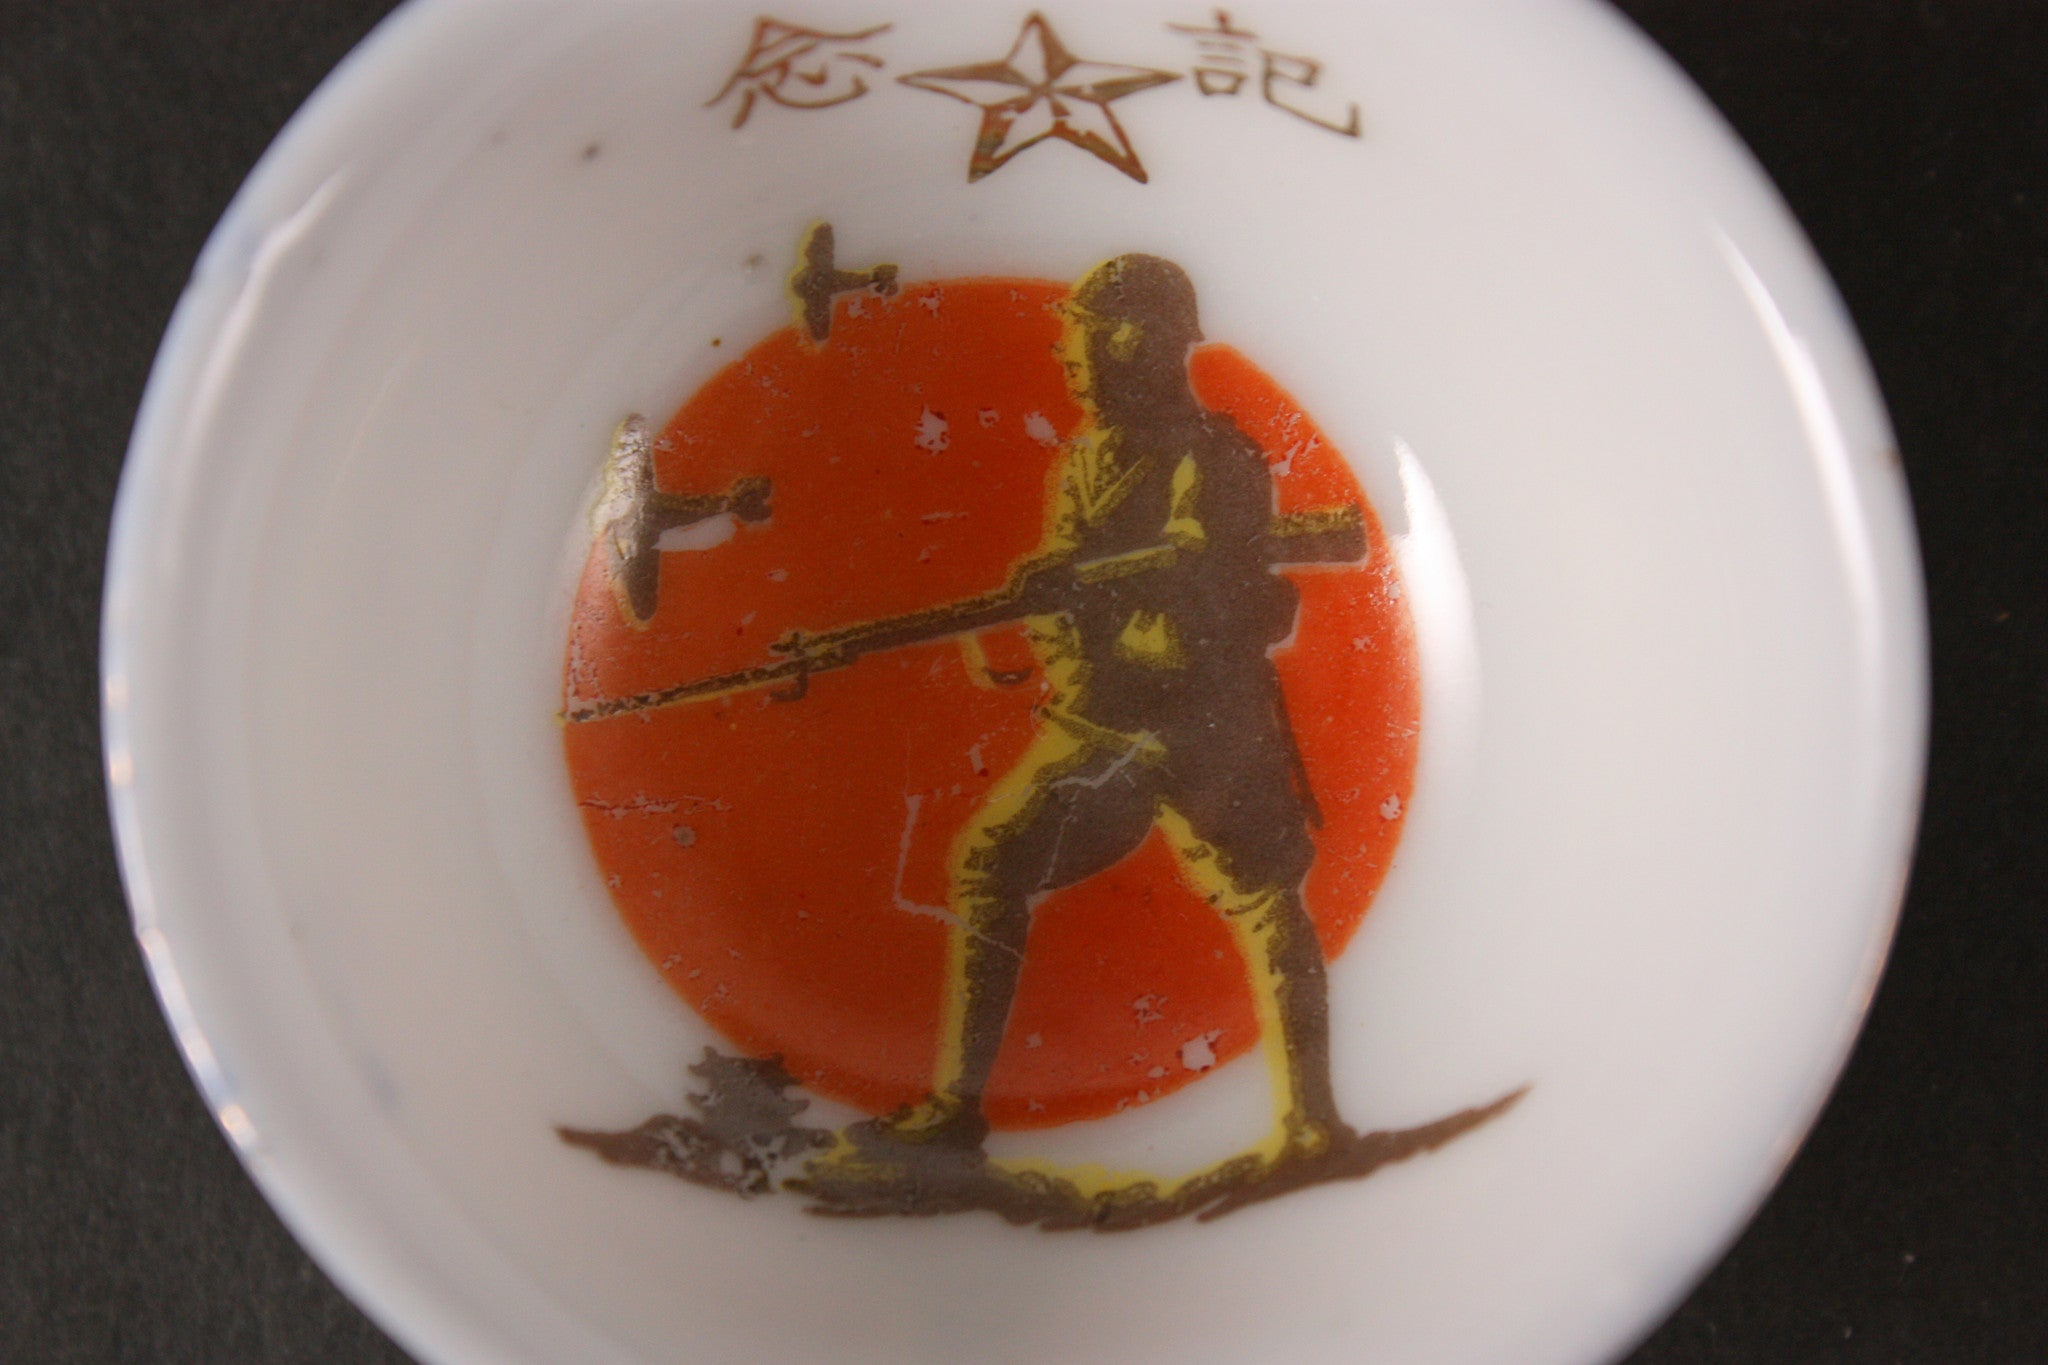 Antique Japanese WW2 Soldier Planes Hinomaru China Army Sake Cup